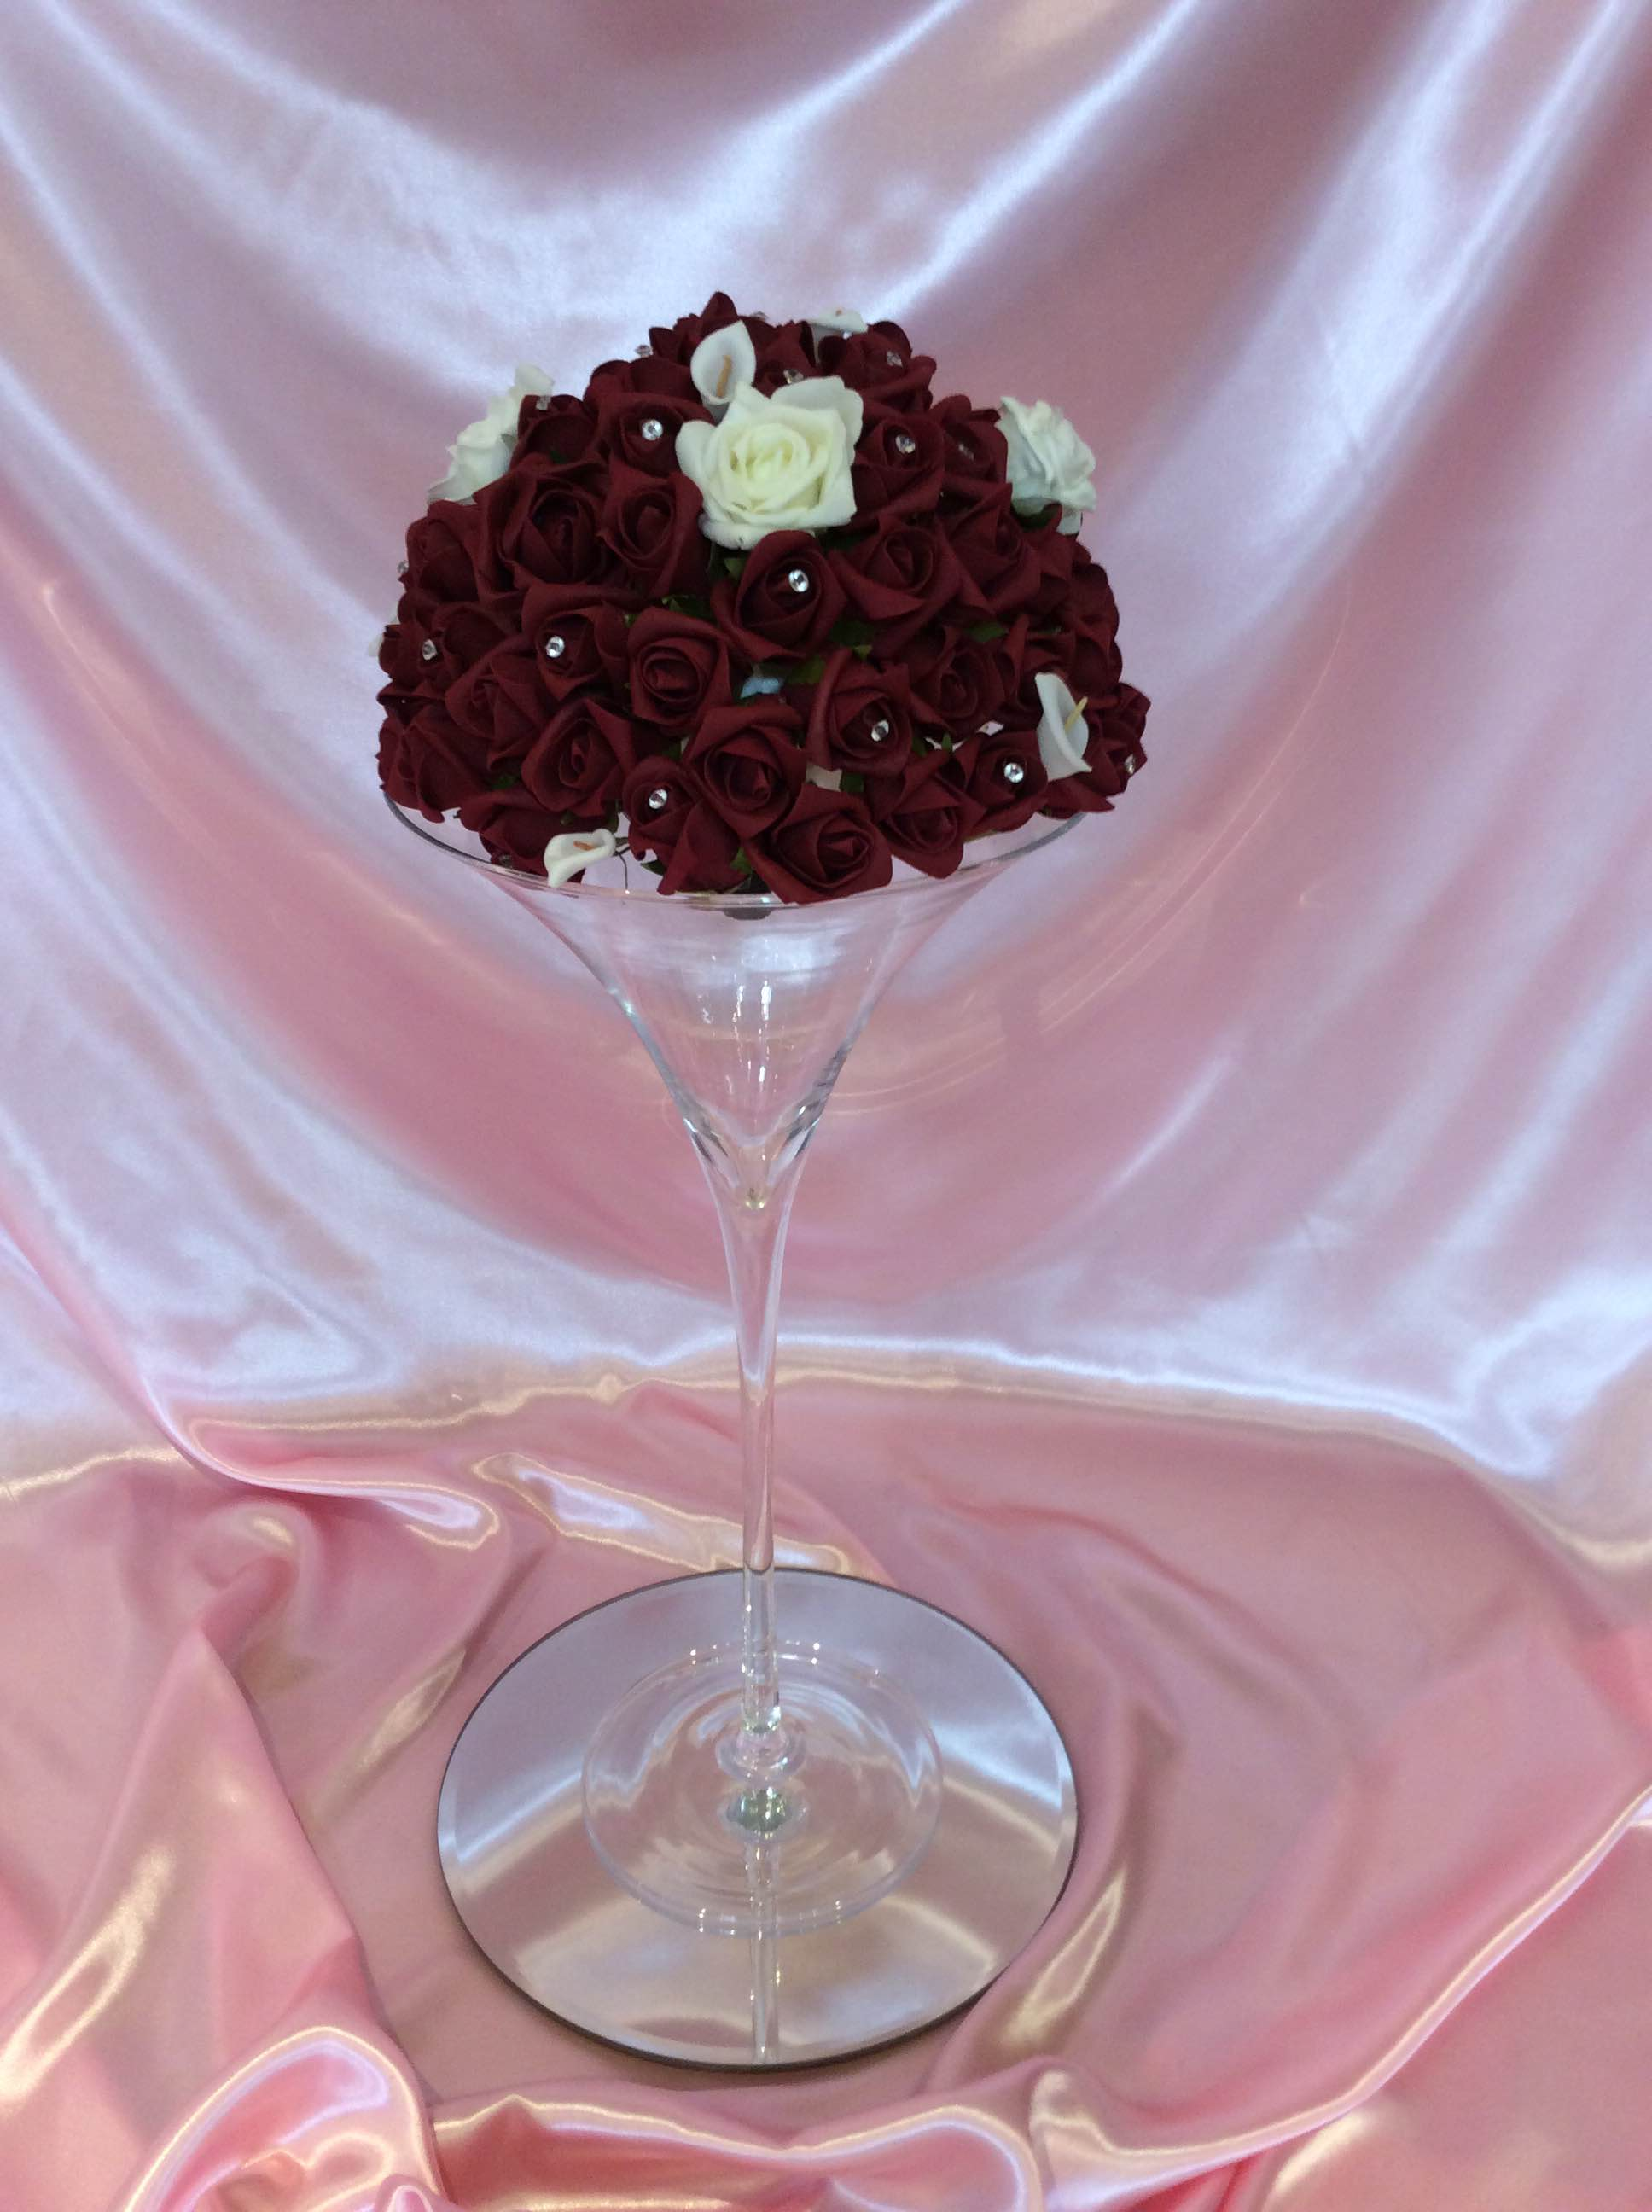 TABLE CENTREPIECES VASES